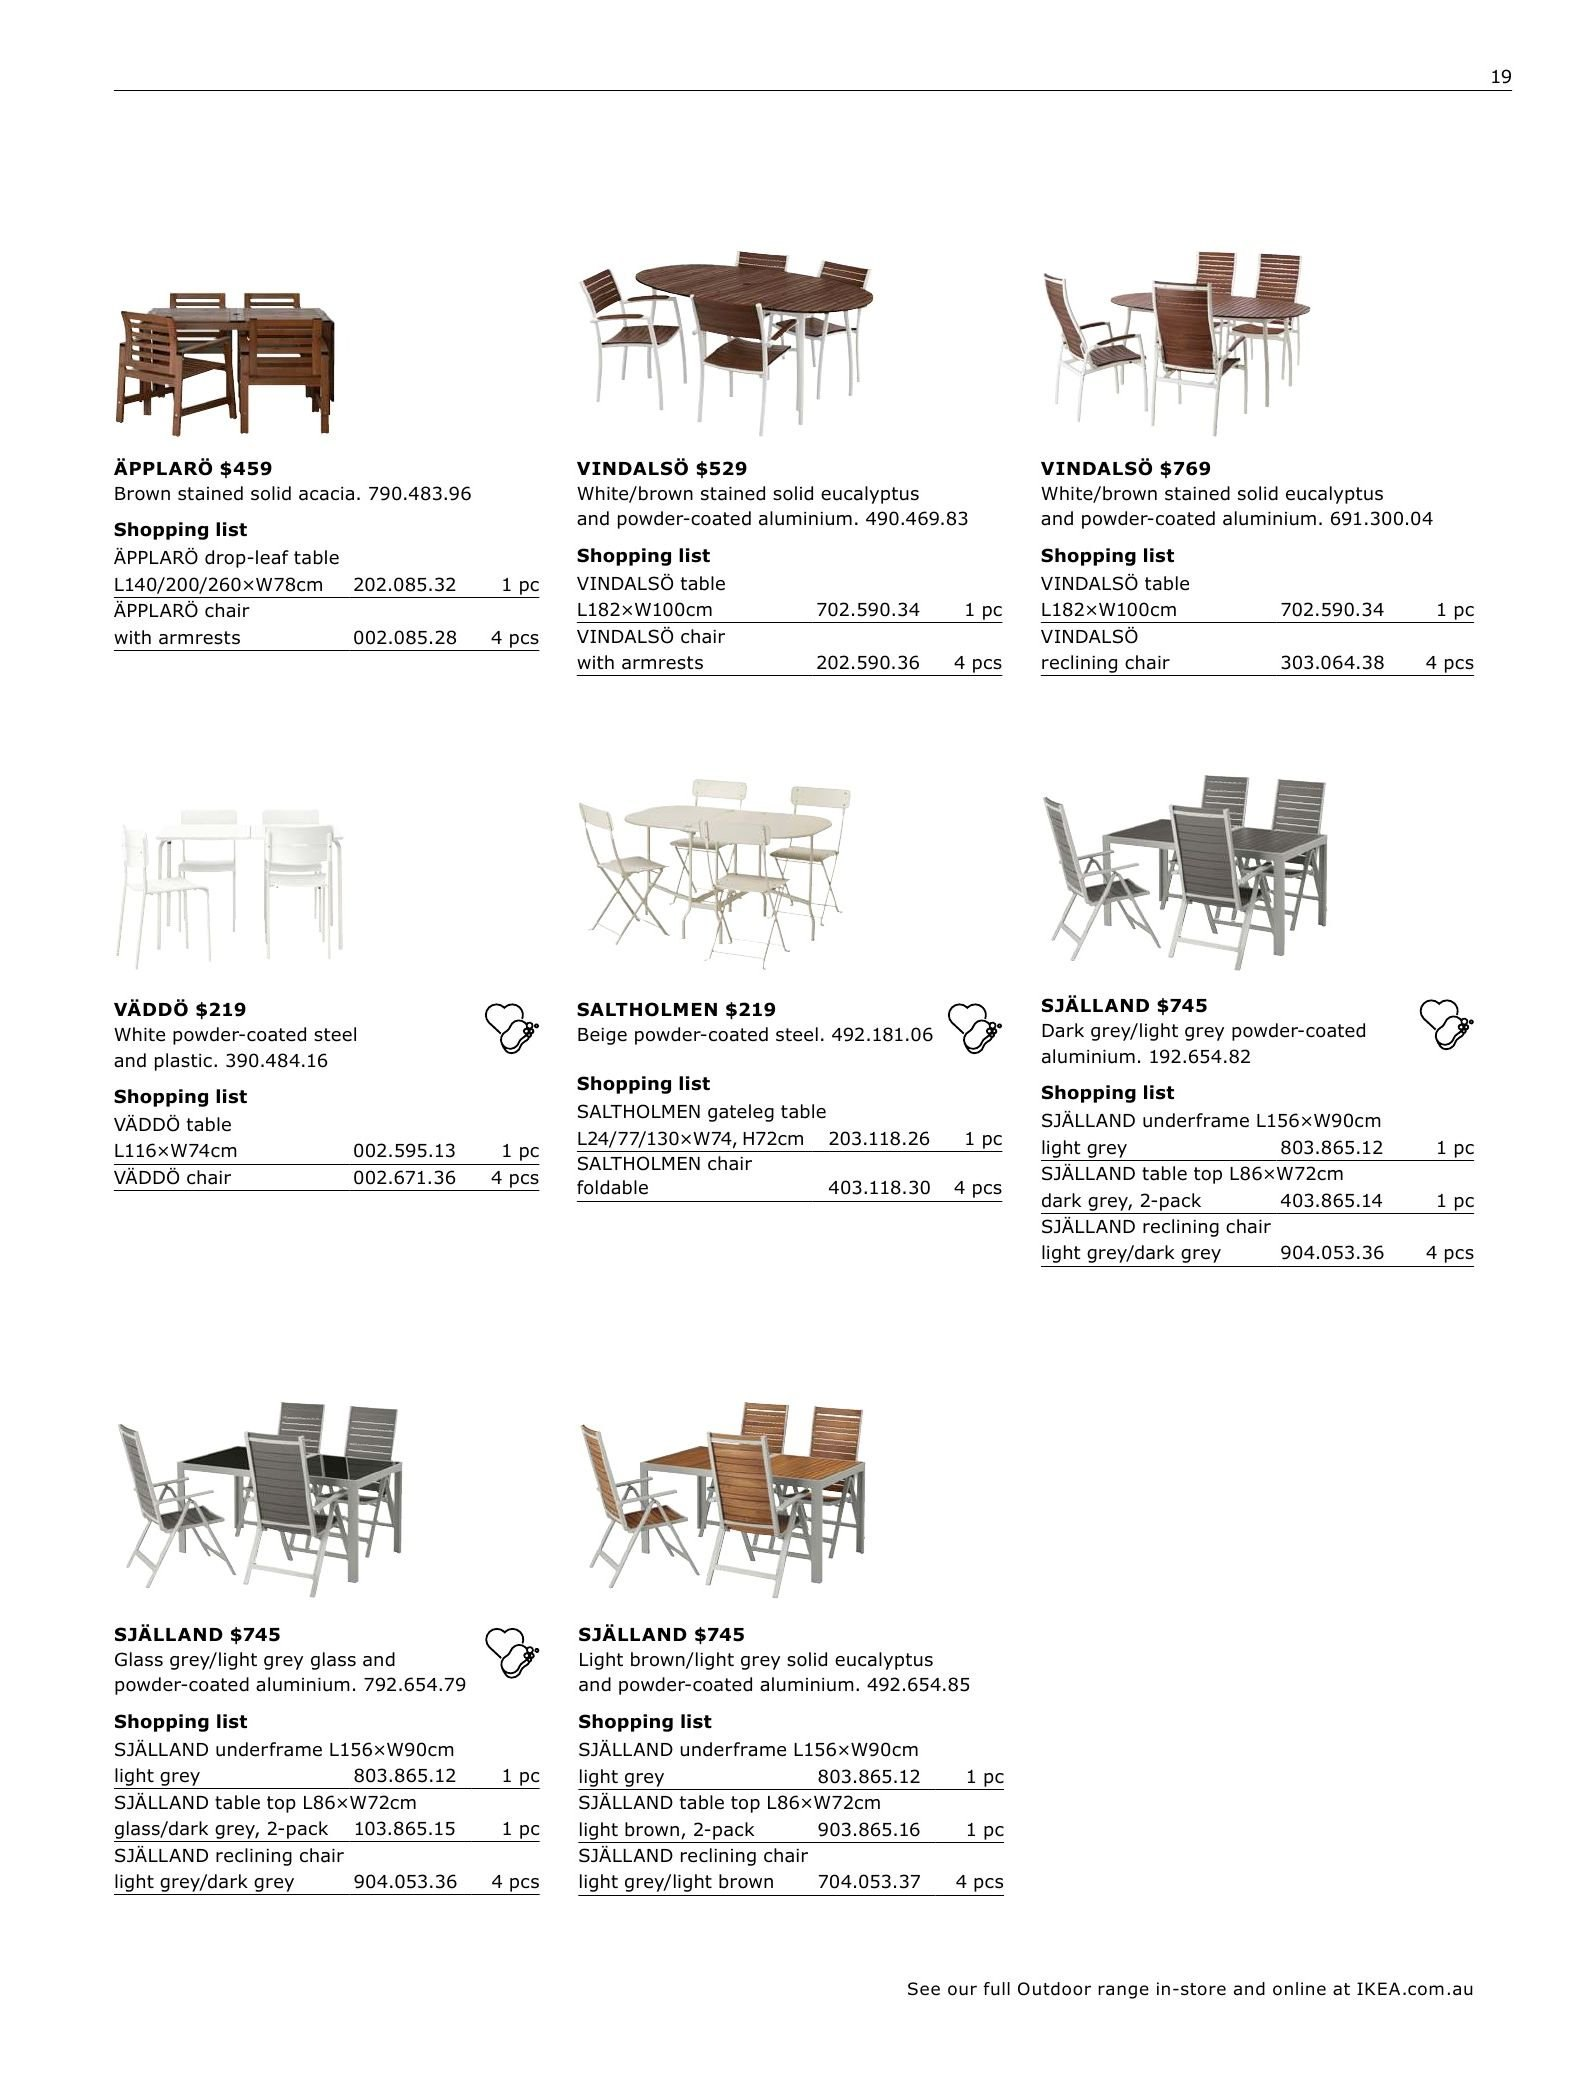 Incredible Ikea Catalogue And Weekly Specials 12 8 2018 31 7 2019 Unemploymentrelief Wooden Chair Designs For Living Room Unemploymentrelieforg